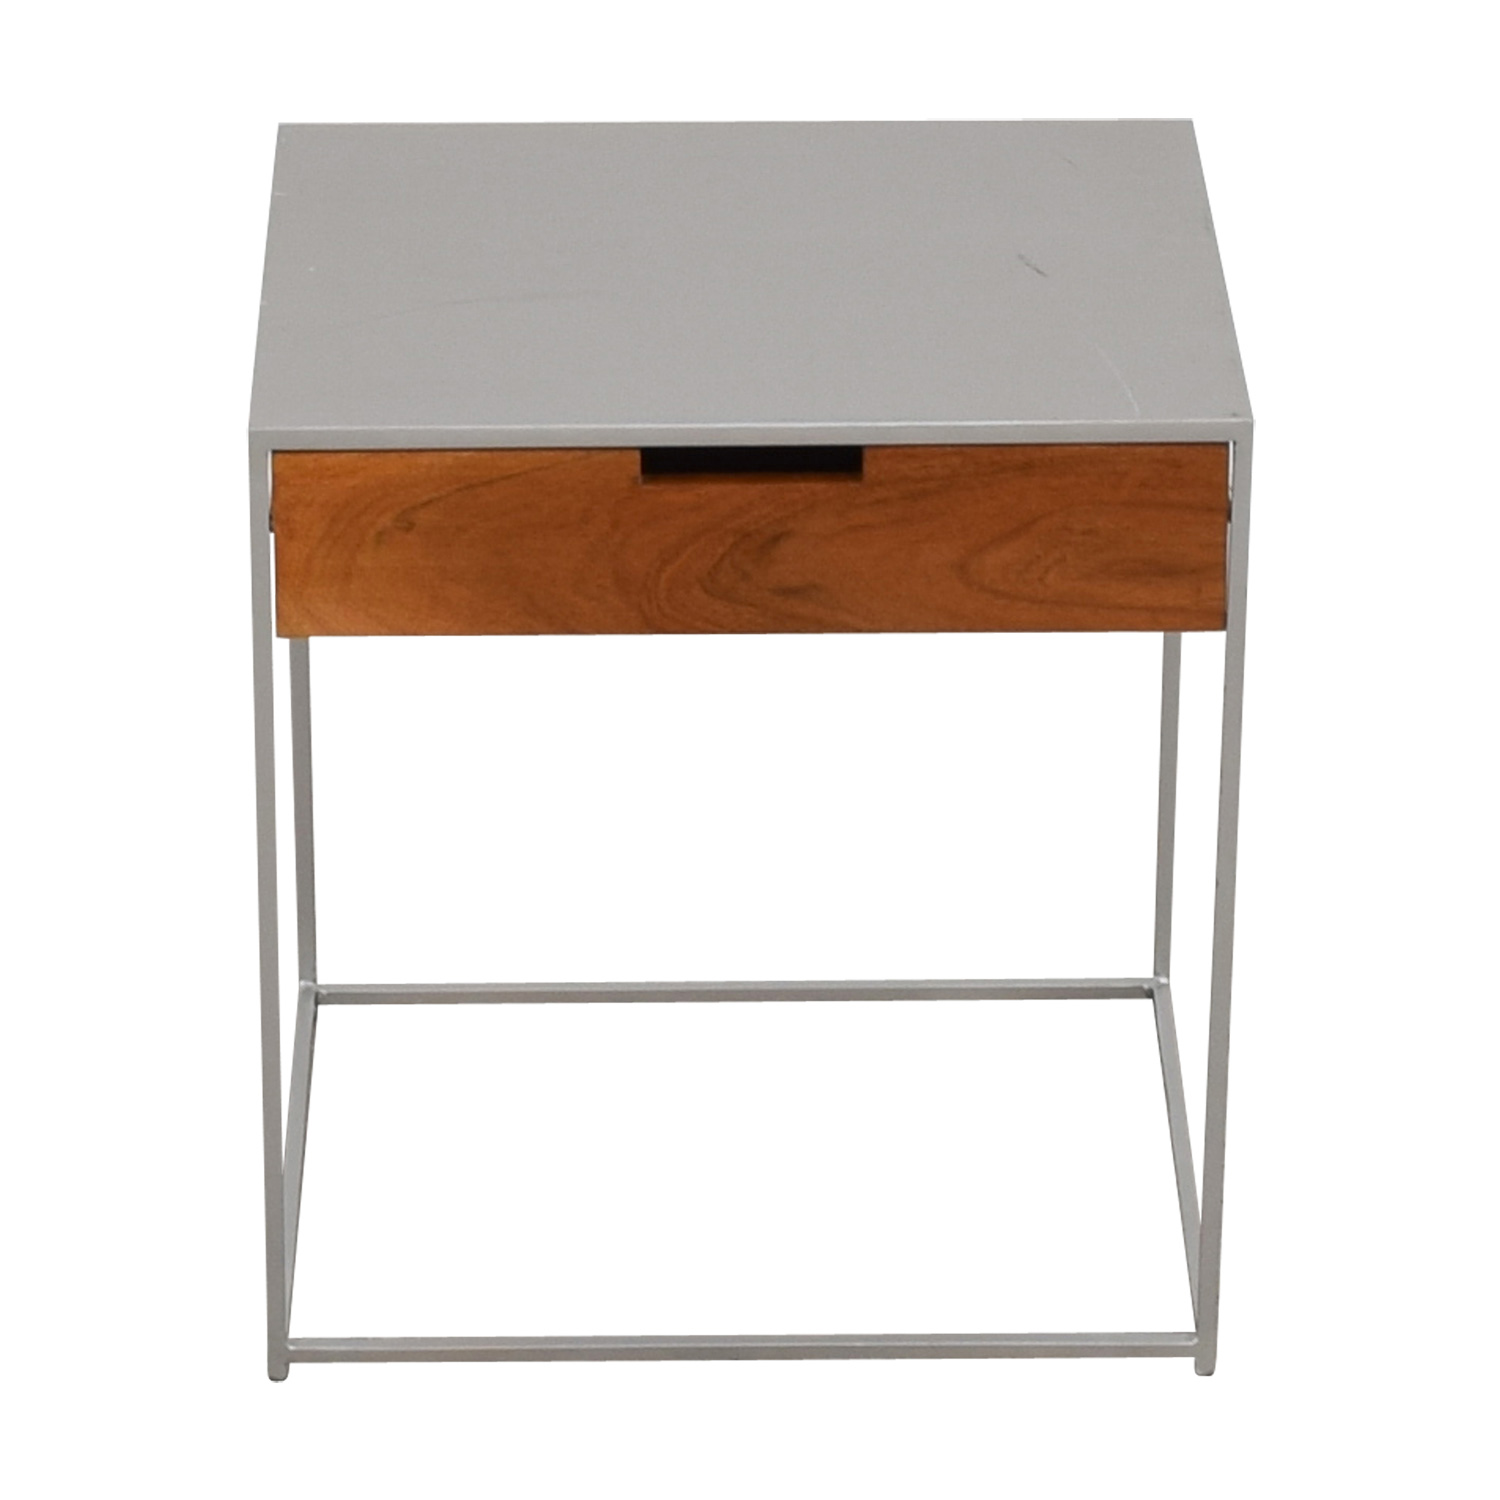 shop CB2 CB2 Audrey Metal and Wood Night Stand online